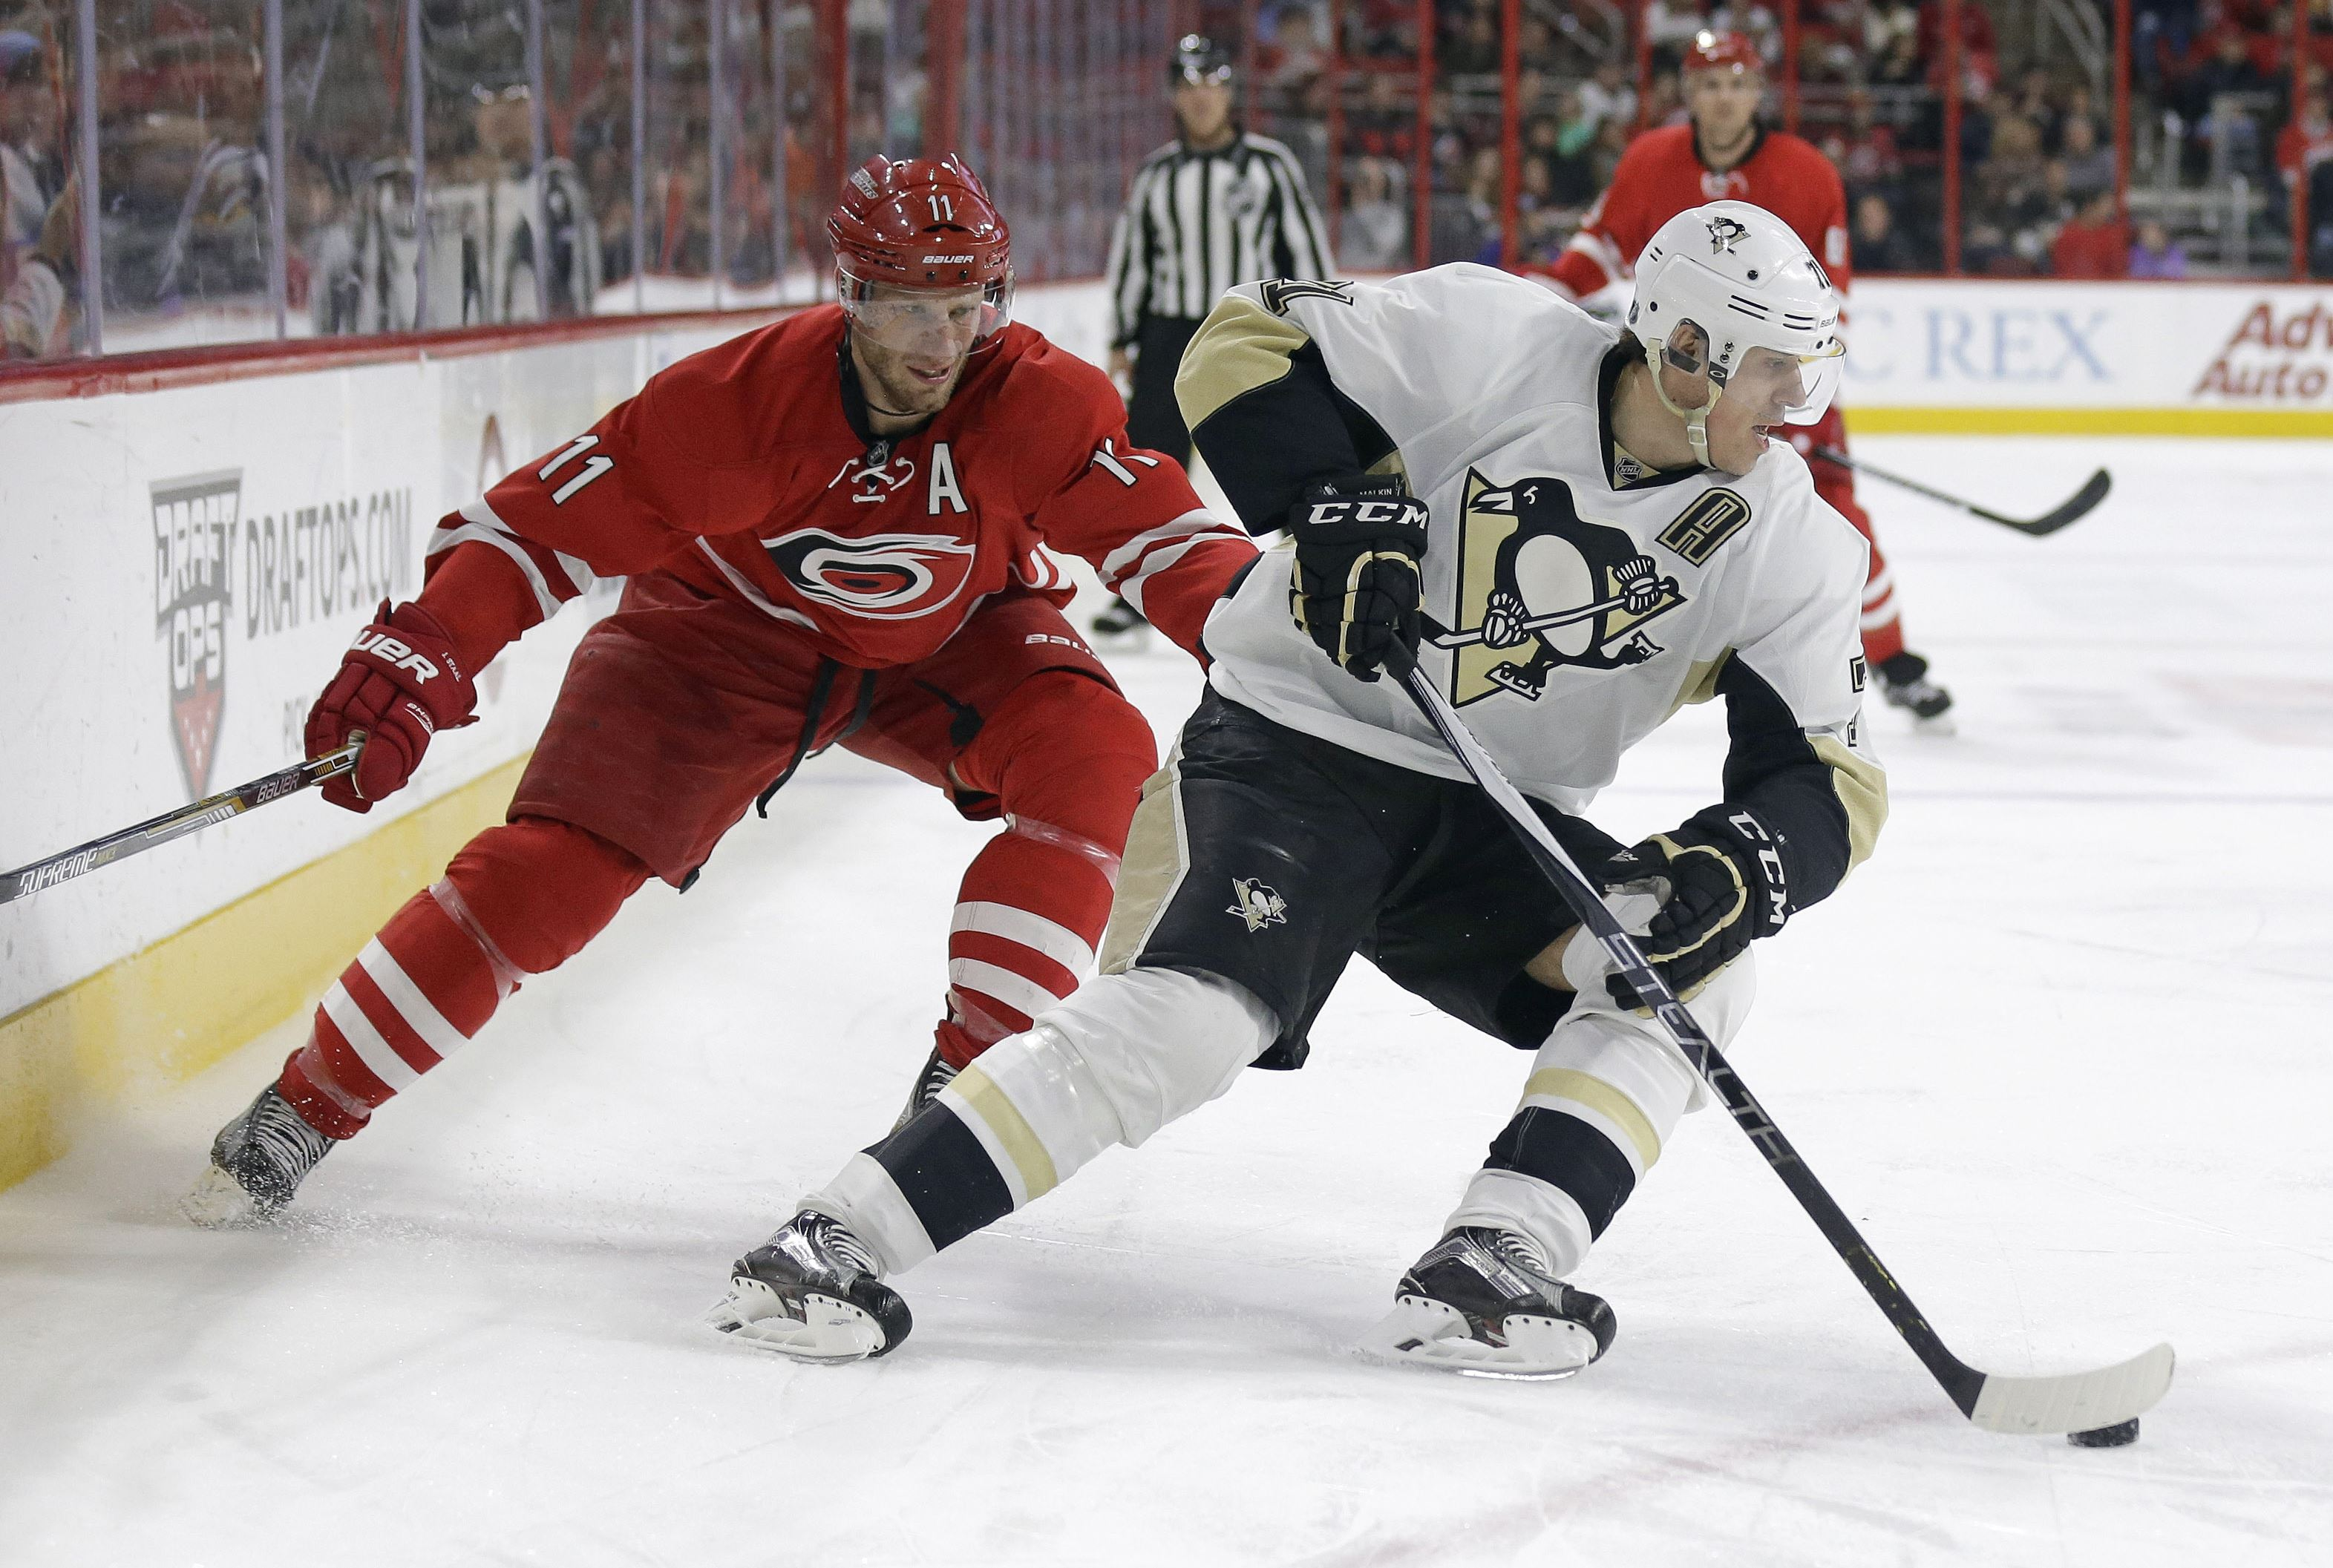 Penguins rally, but fall to Hurricanes in OT, 3-2